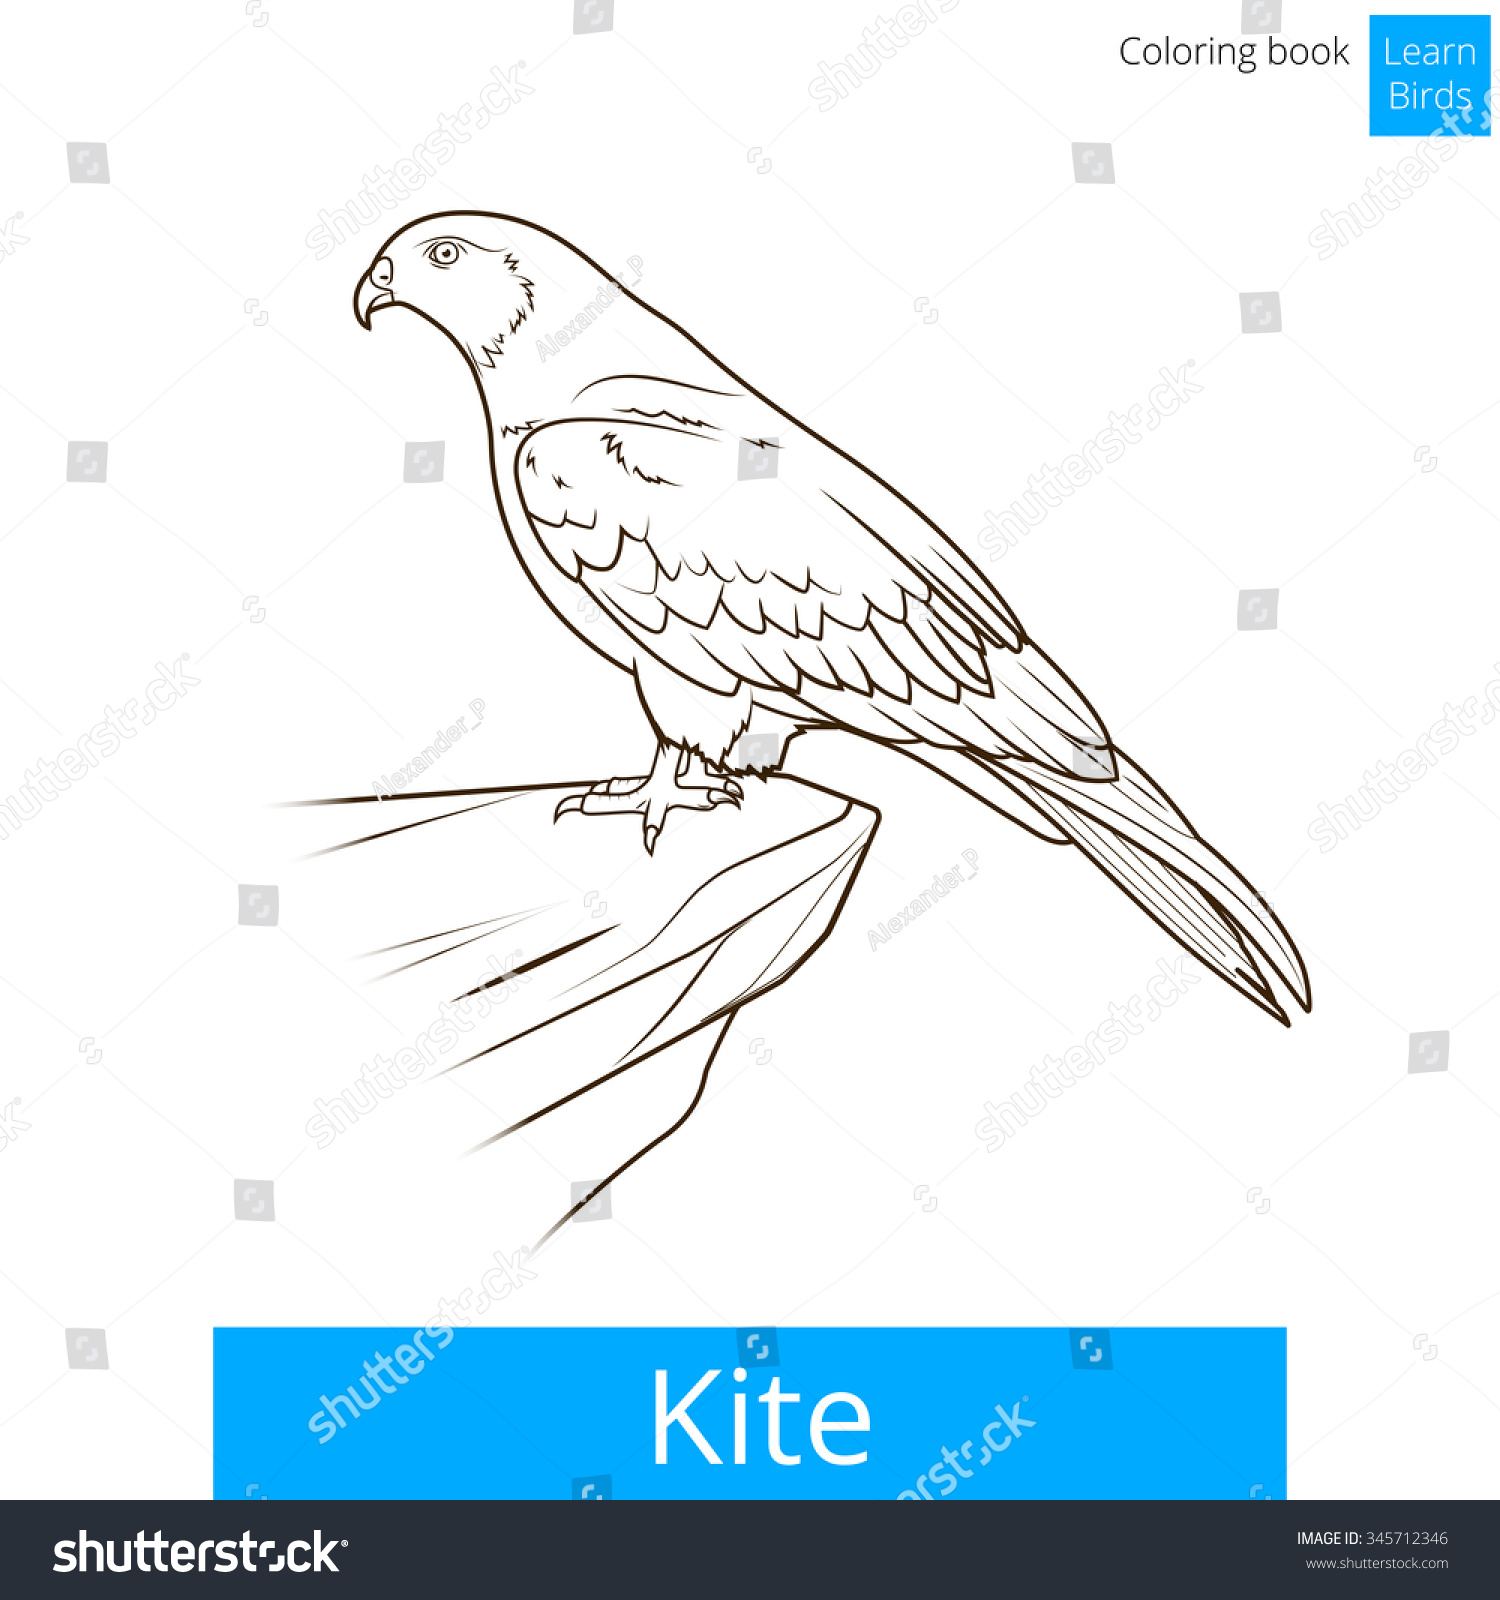 Kite Bird Learn Birds Educational Game Coloring Book Vector Illustration